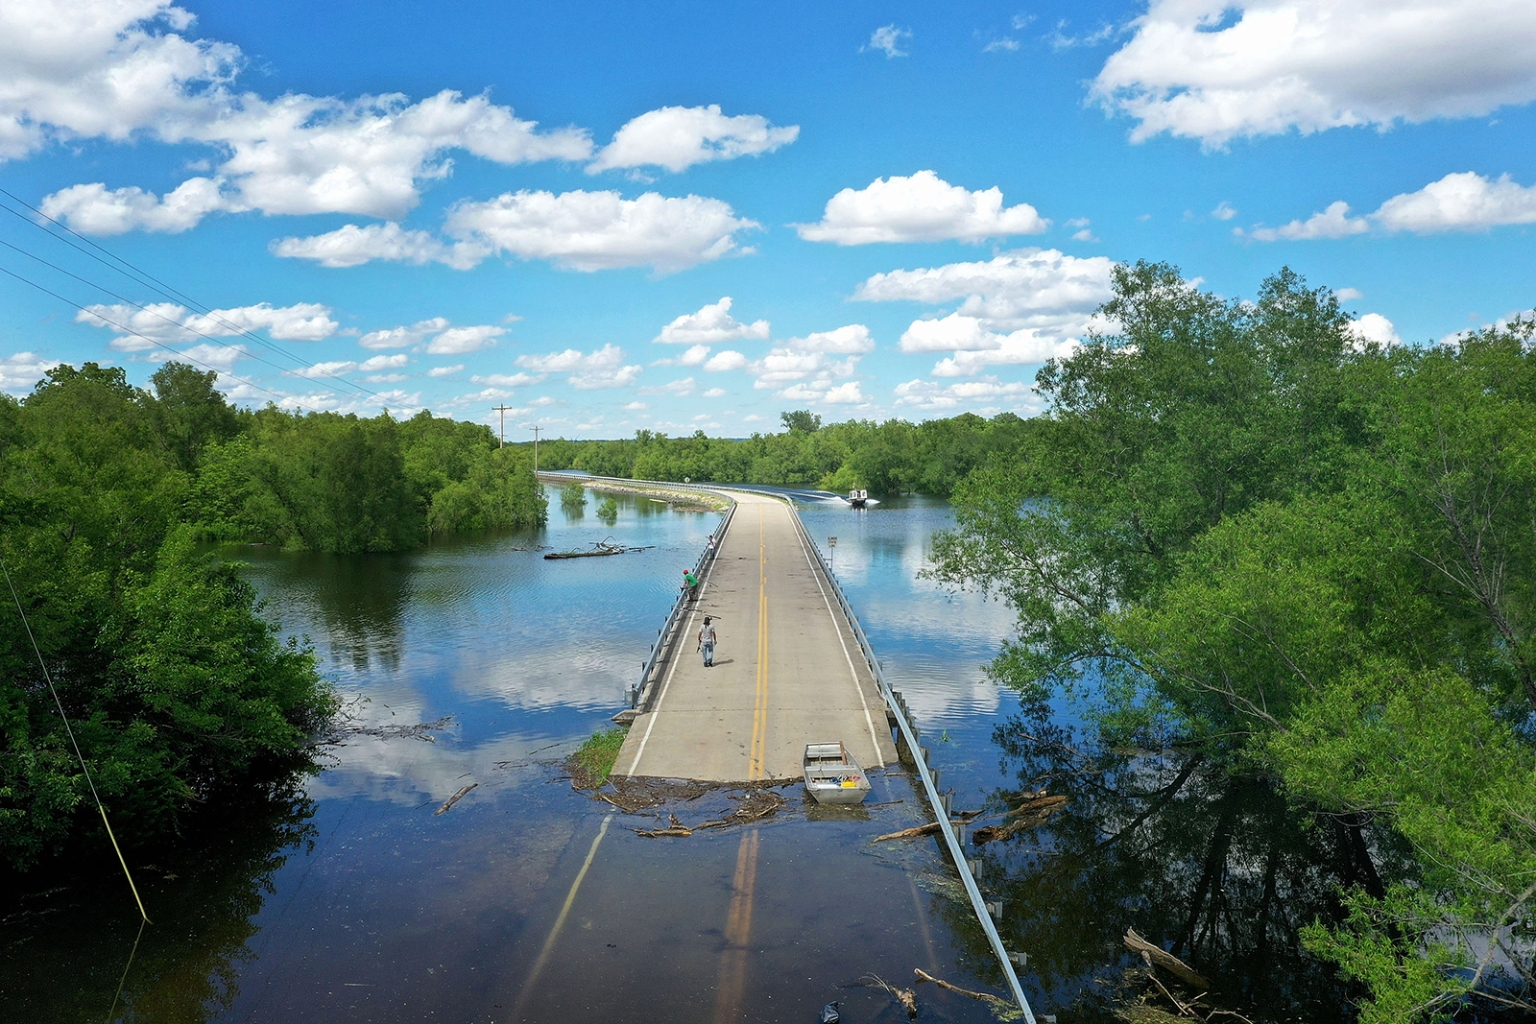 Floodwaters from the Mississippi River cut off the roadway from Missouri into Illinois at the state's border in Saint Mary, Missouri, on May 30. Scott Olson/Getty Images